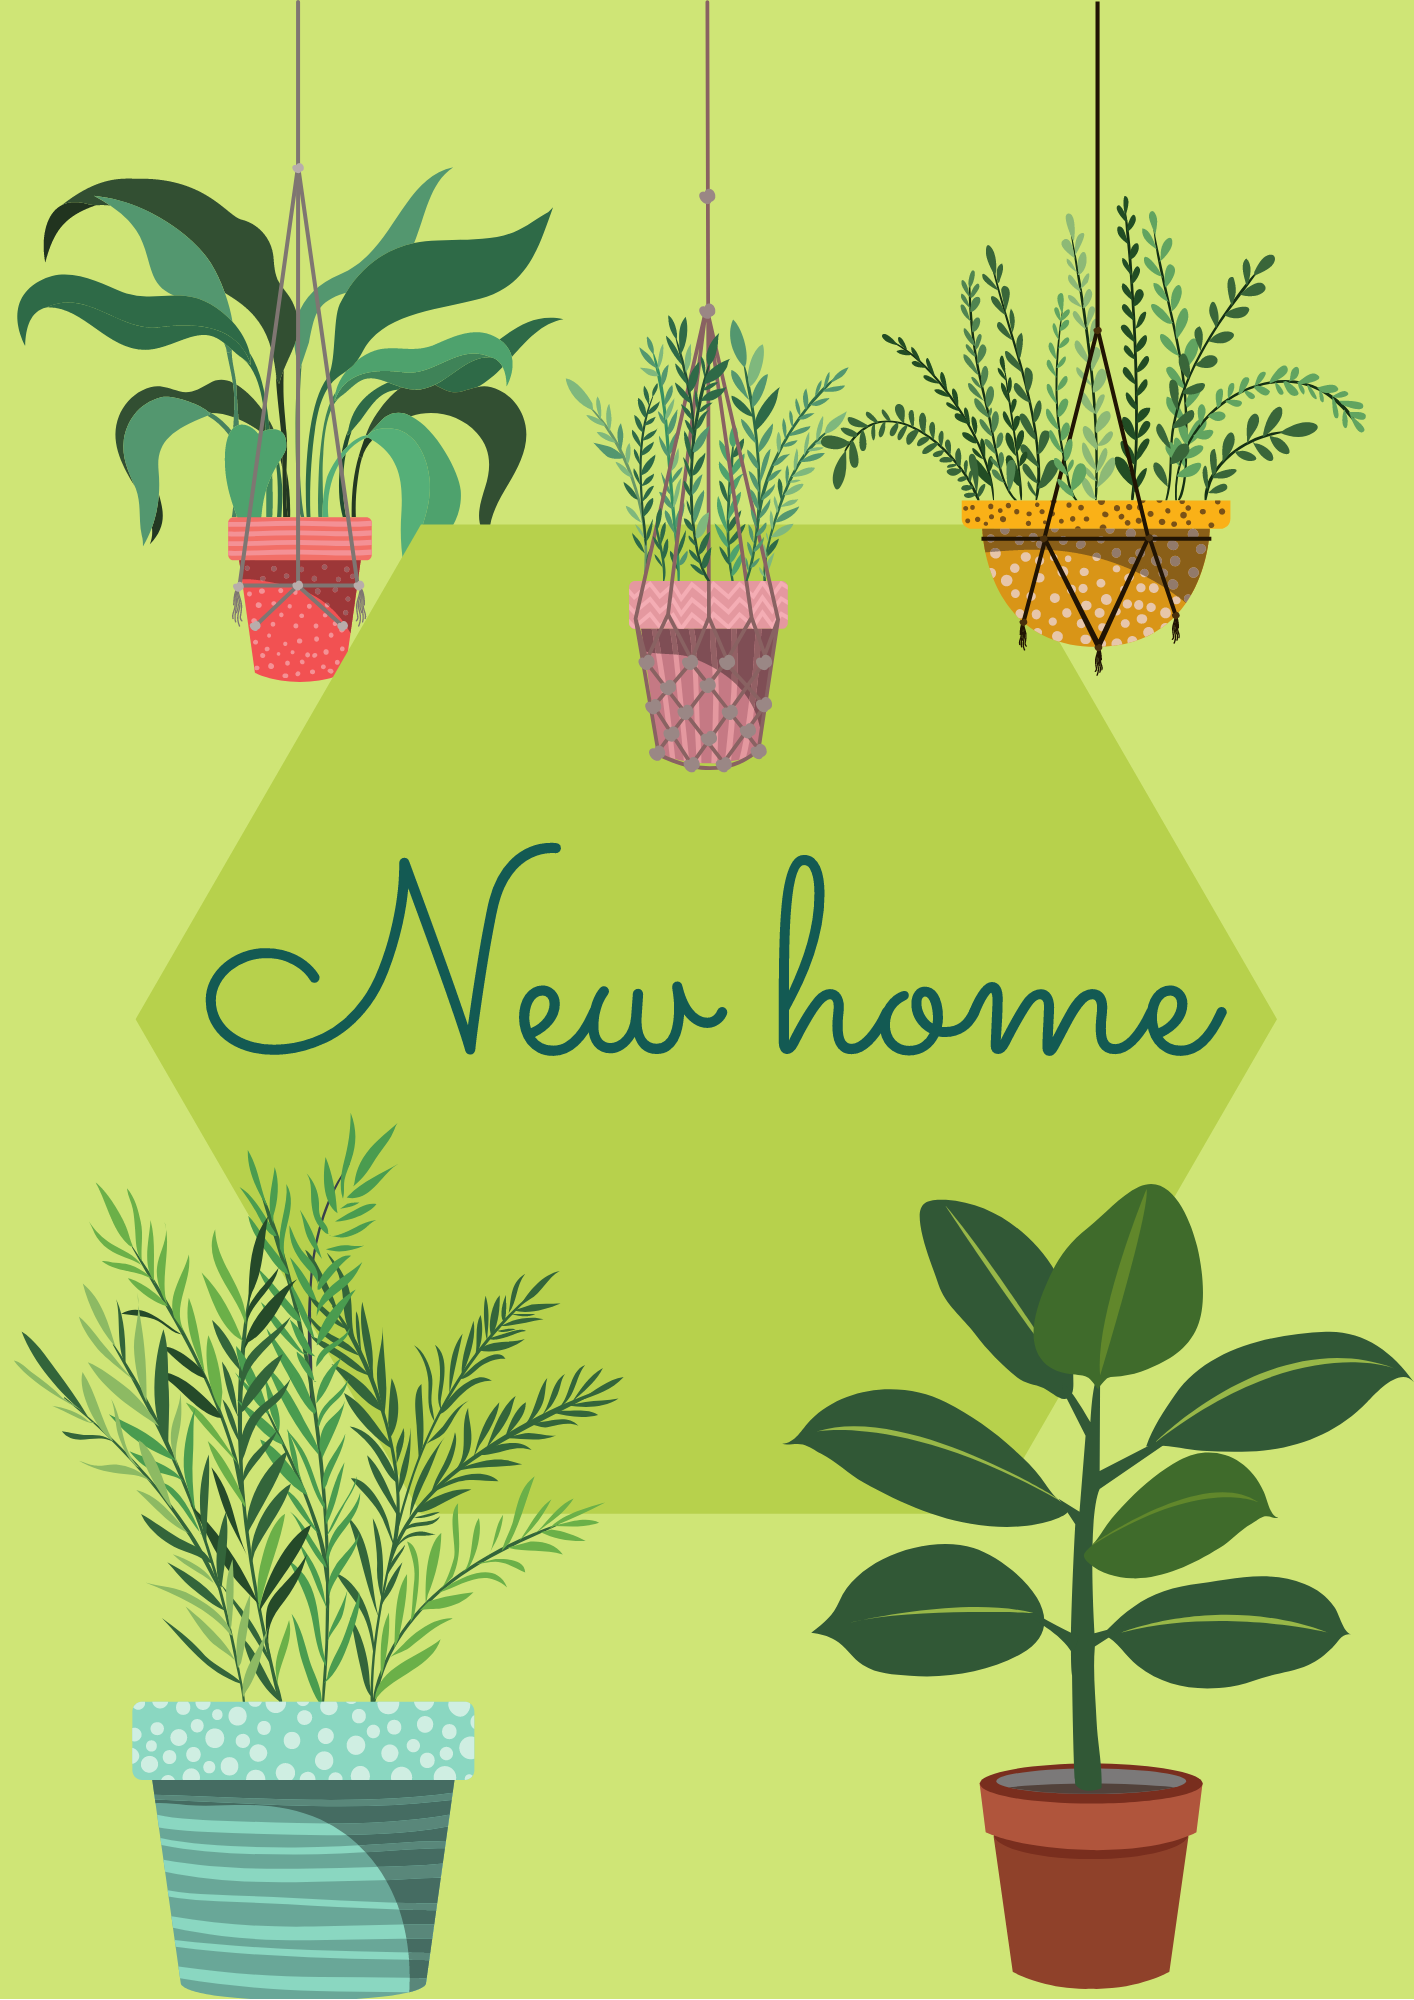 'New home' greetings card